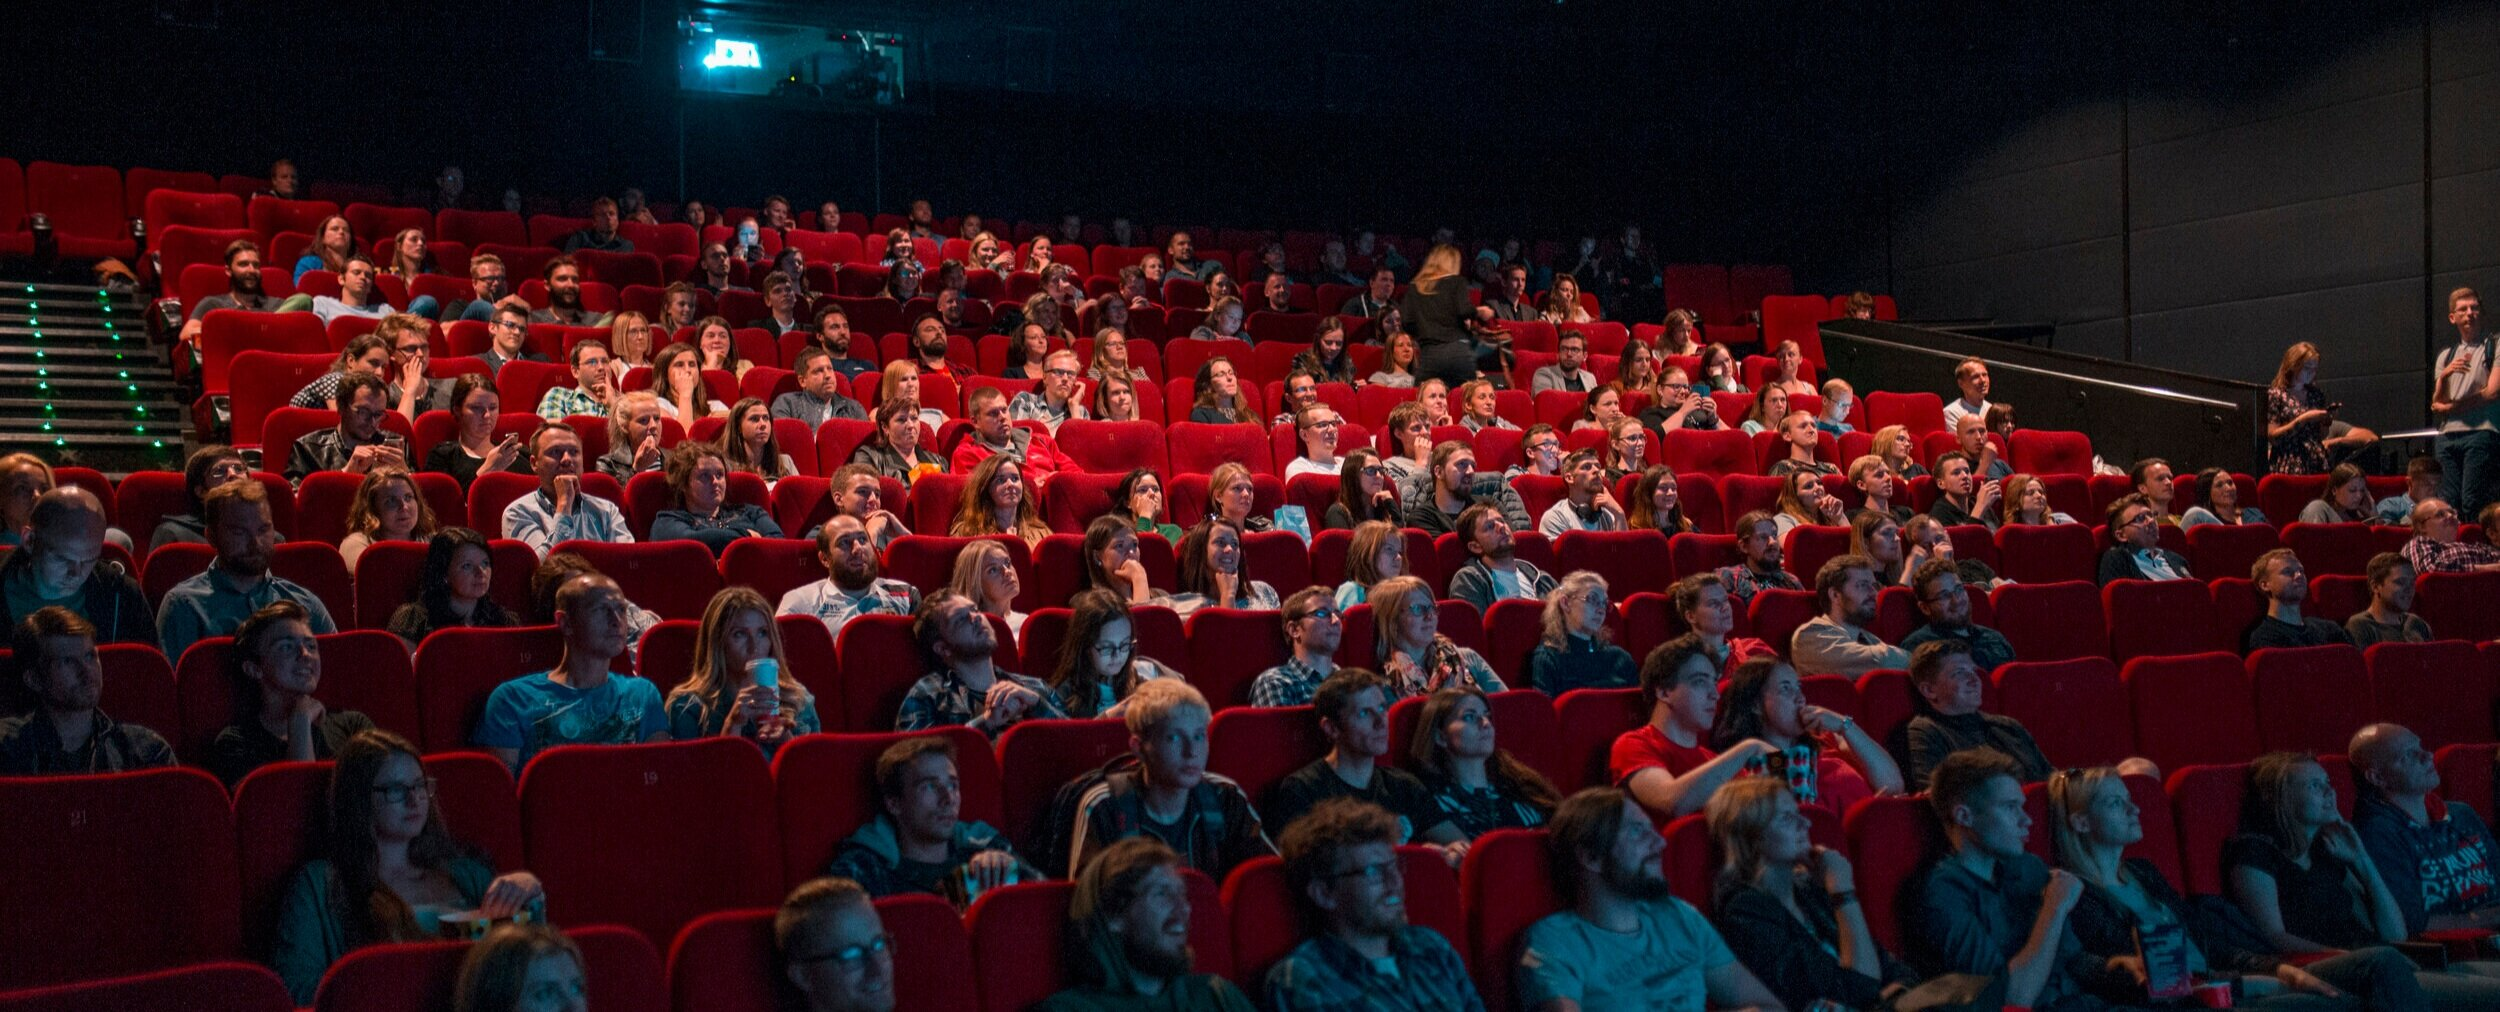 AI is helping to redefine and reshape everyday customer experiences like a night at the movies.